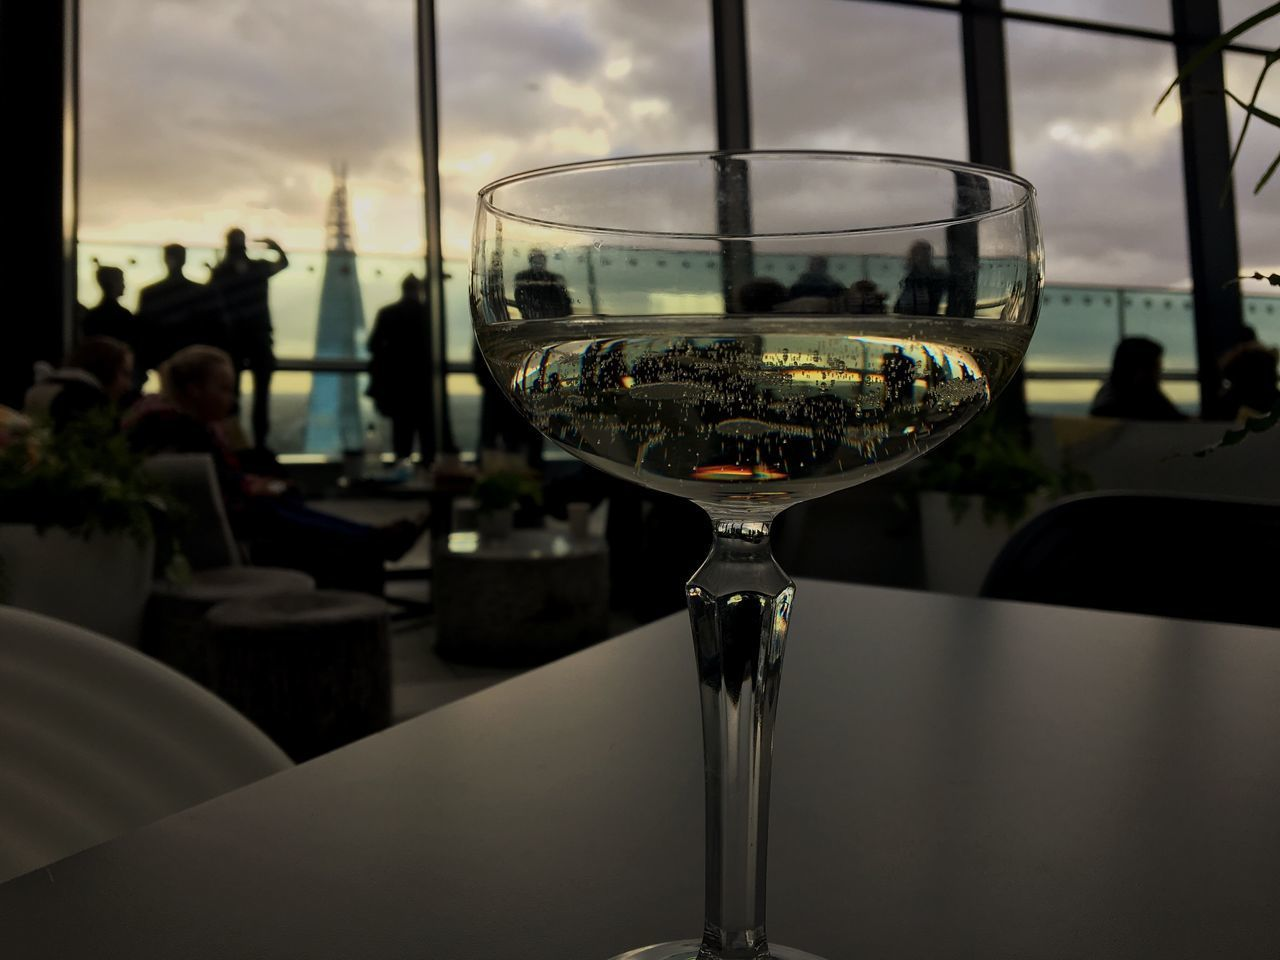 Bicchiere Glass Drinking Glass Focus On Foreground Drink Sky Indoors  Sun Enjoying Life Panoramic Photography EyeEm Best Shots IPhoneography London Shard Skygarden Grattacielo